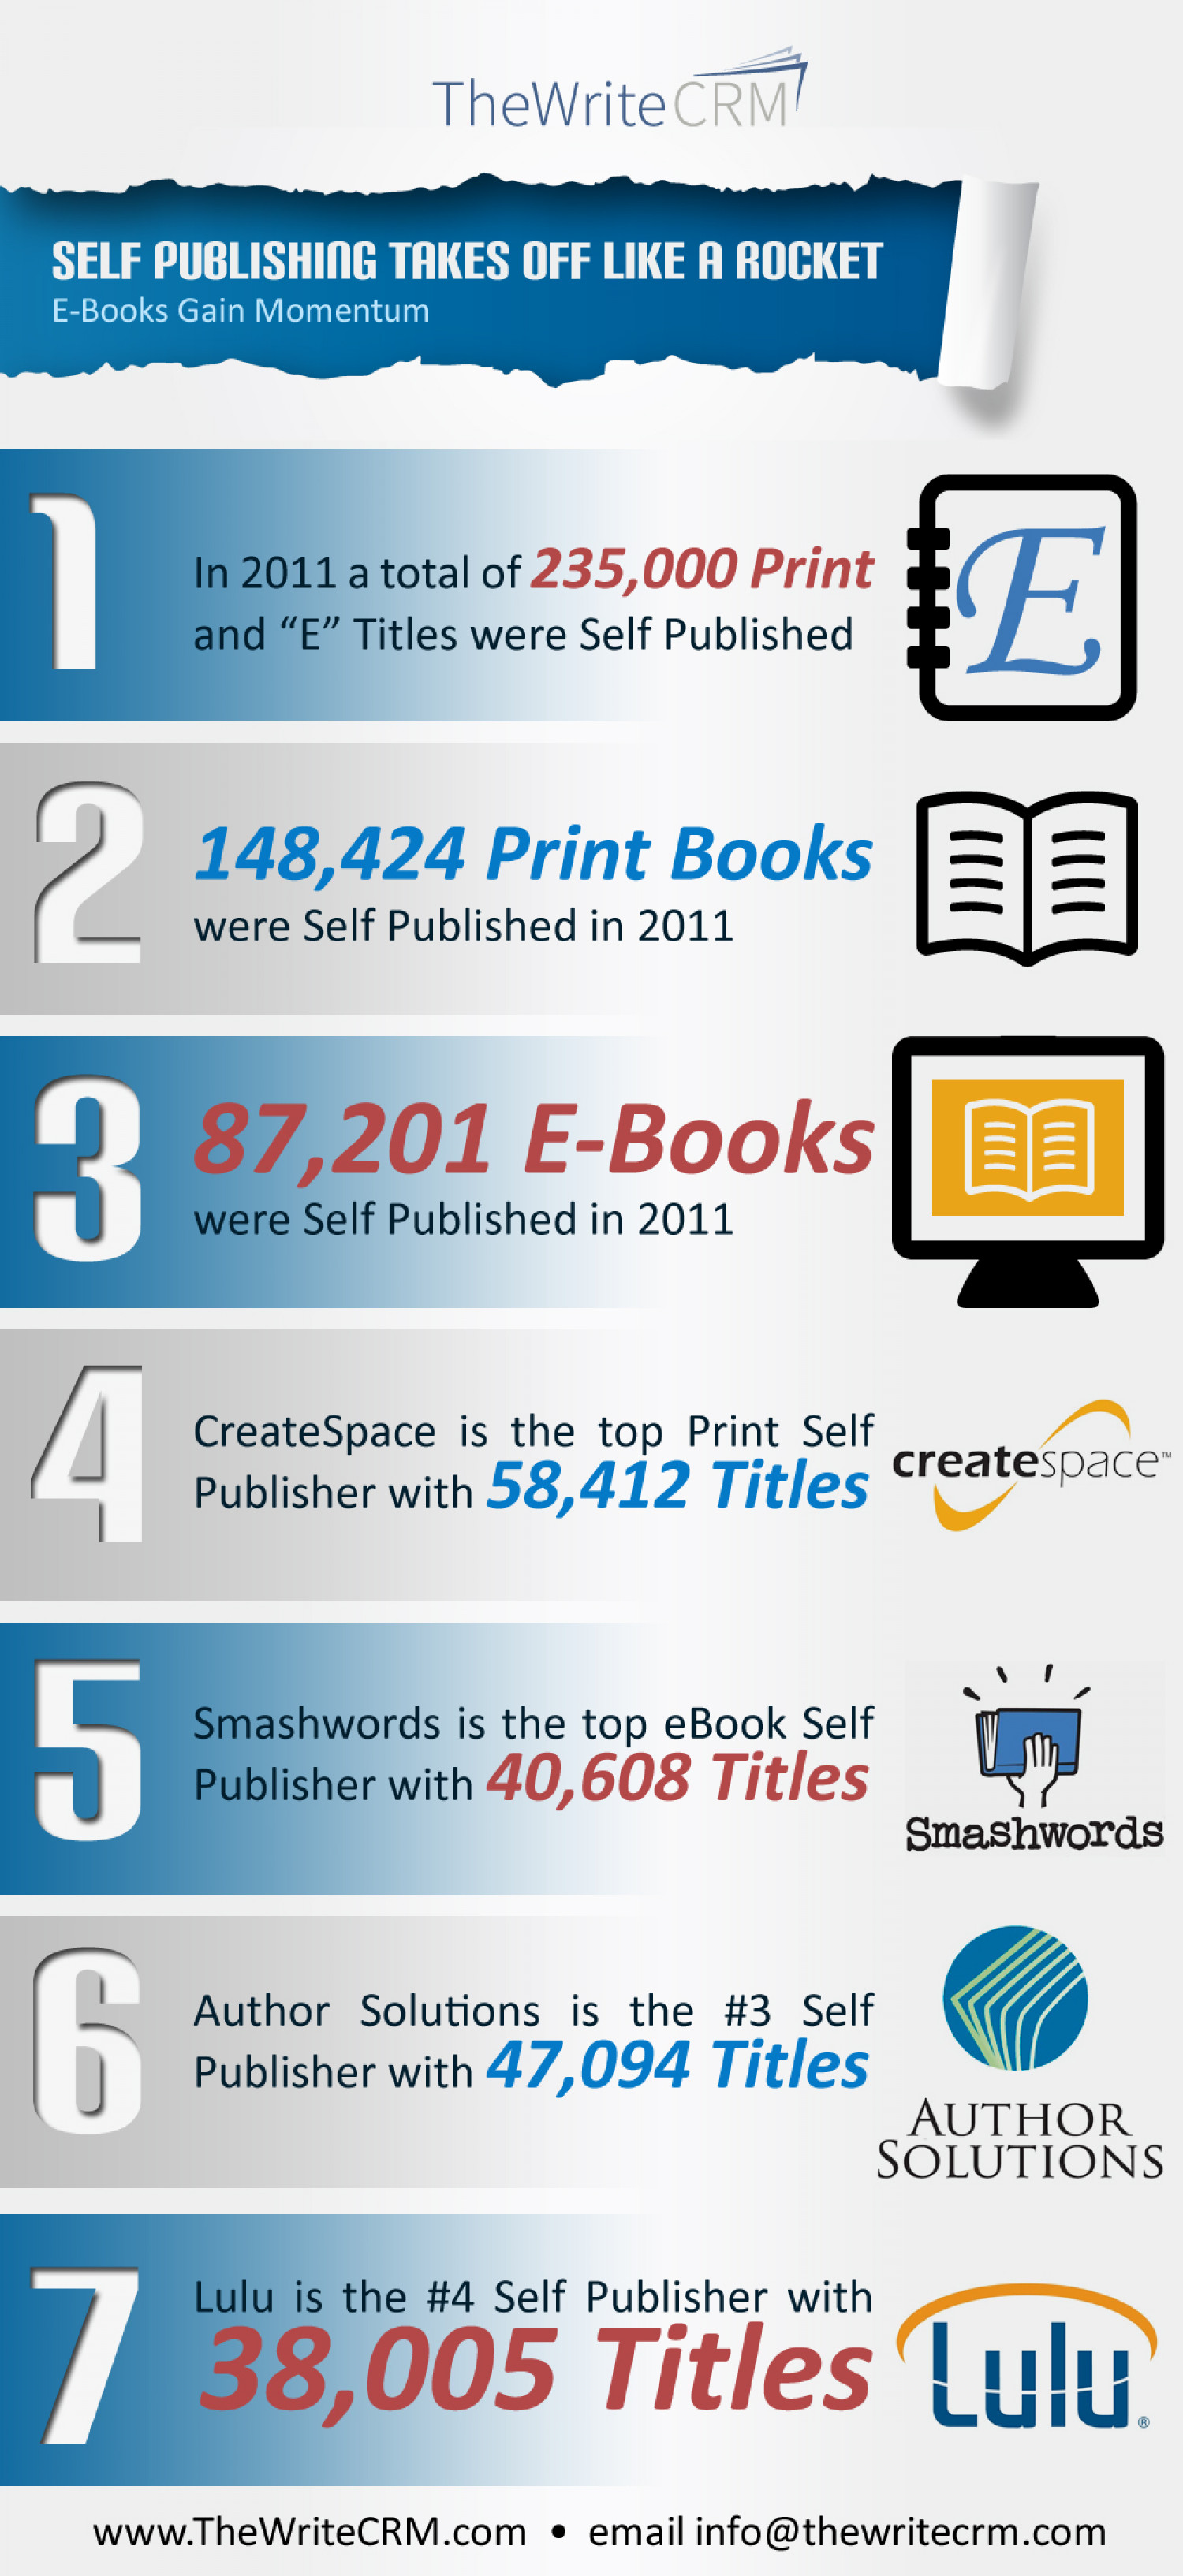 Self Publishing Takes Off Like a Rocket Infographic